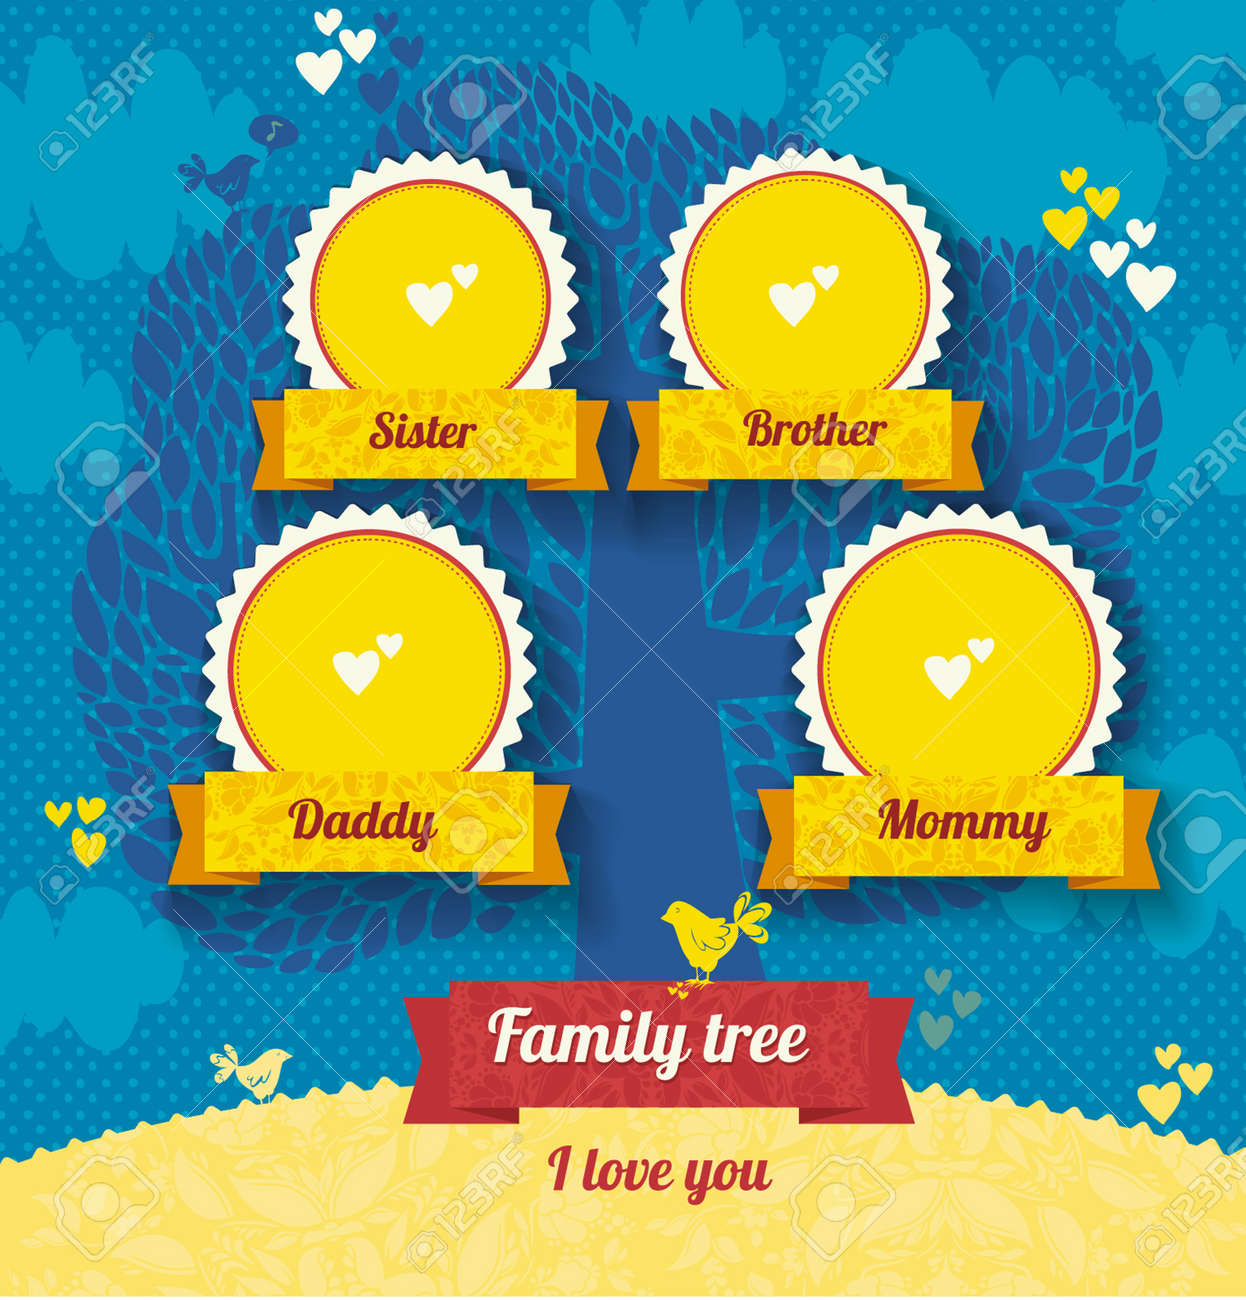 Vector Template For A Family Tree. Use A Template To Create A ...